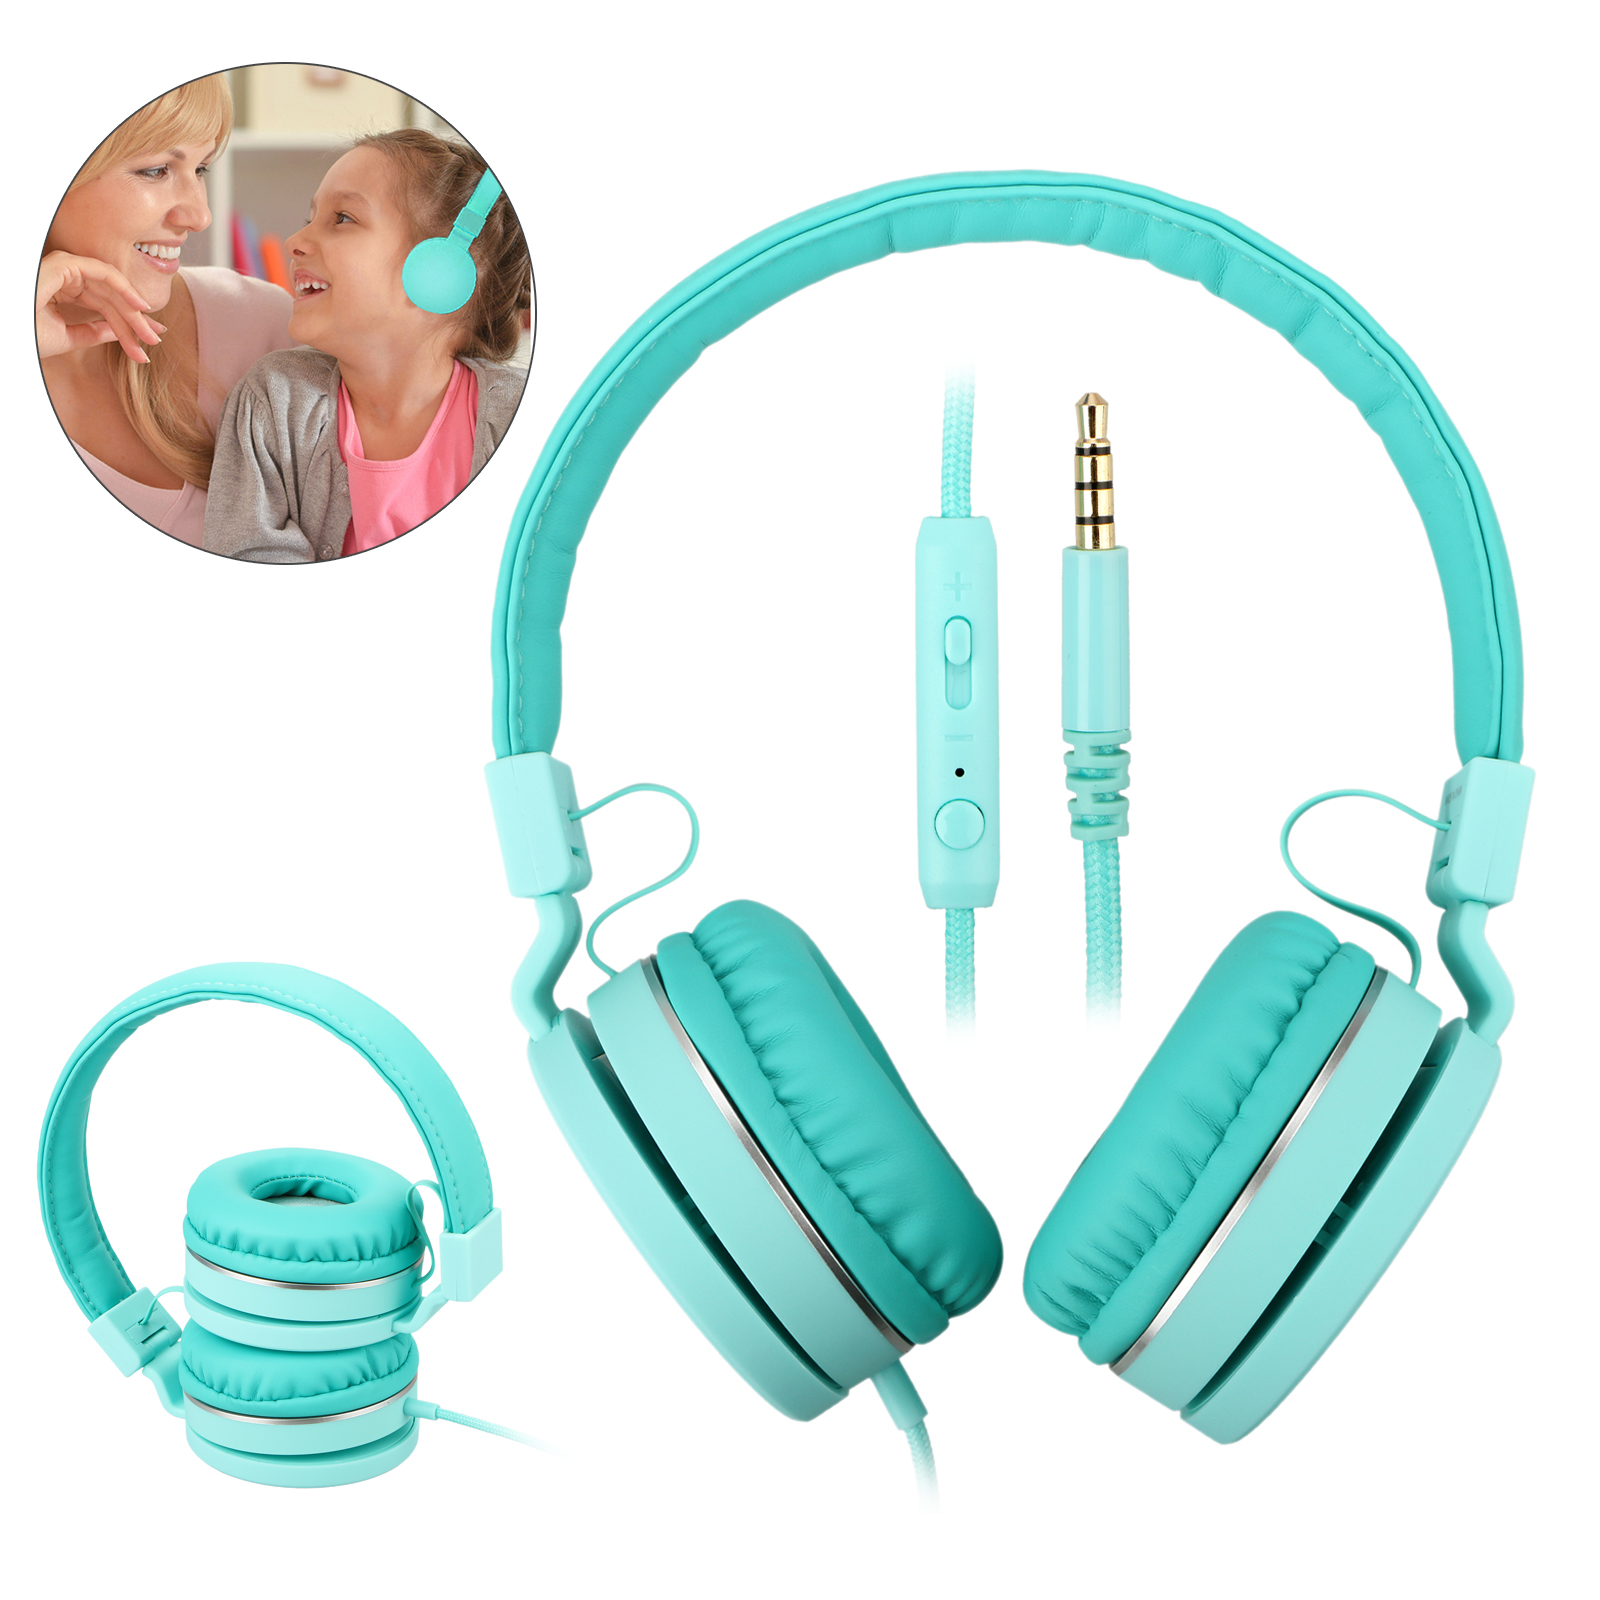 Wired headphones Volume Limited Headset Built-in HD Microphone Elegant and Fashion Earphone for Children/Kinds